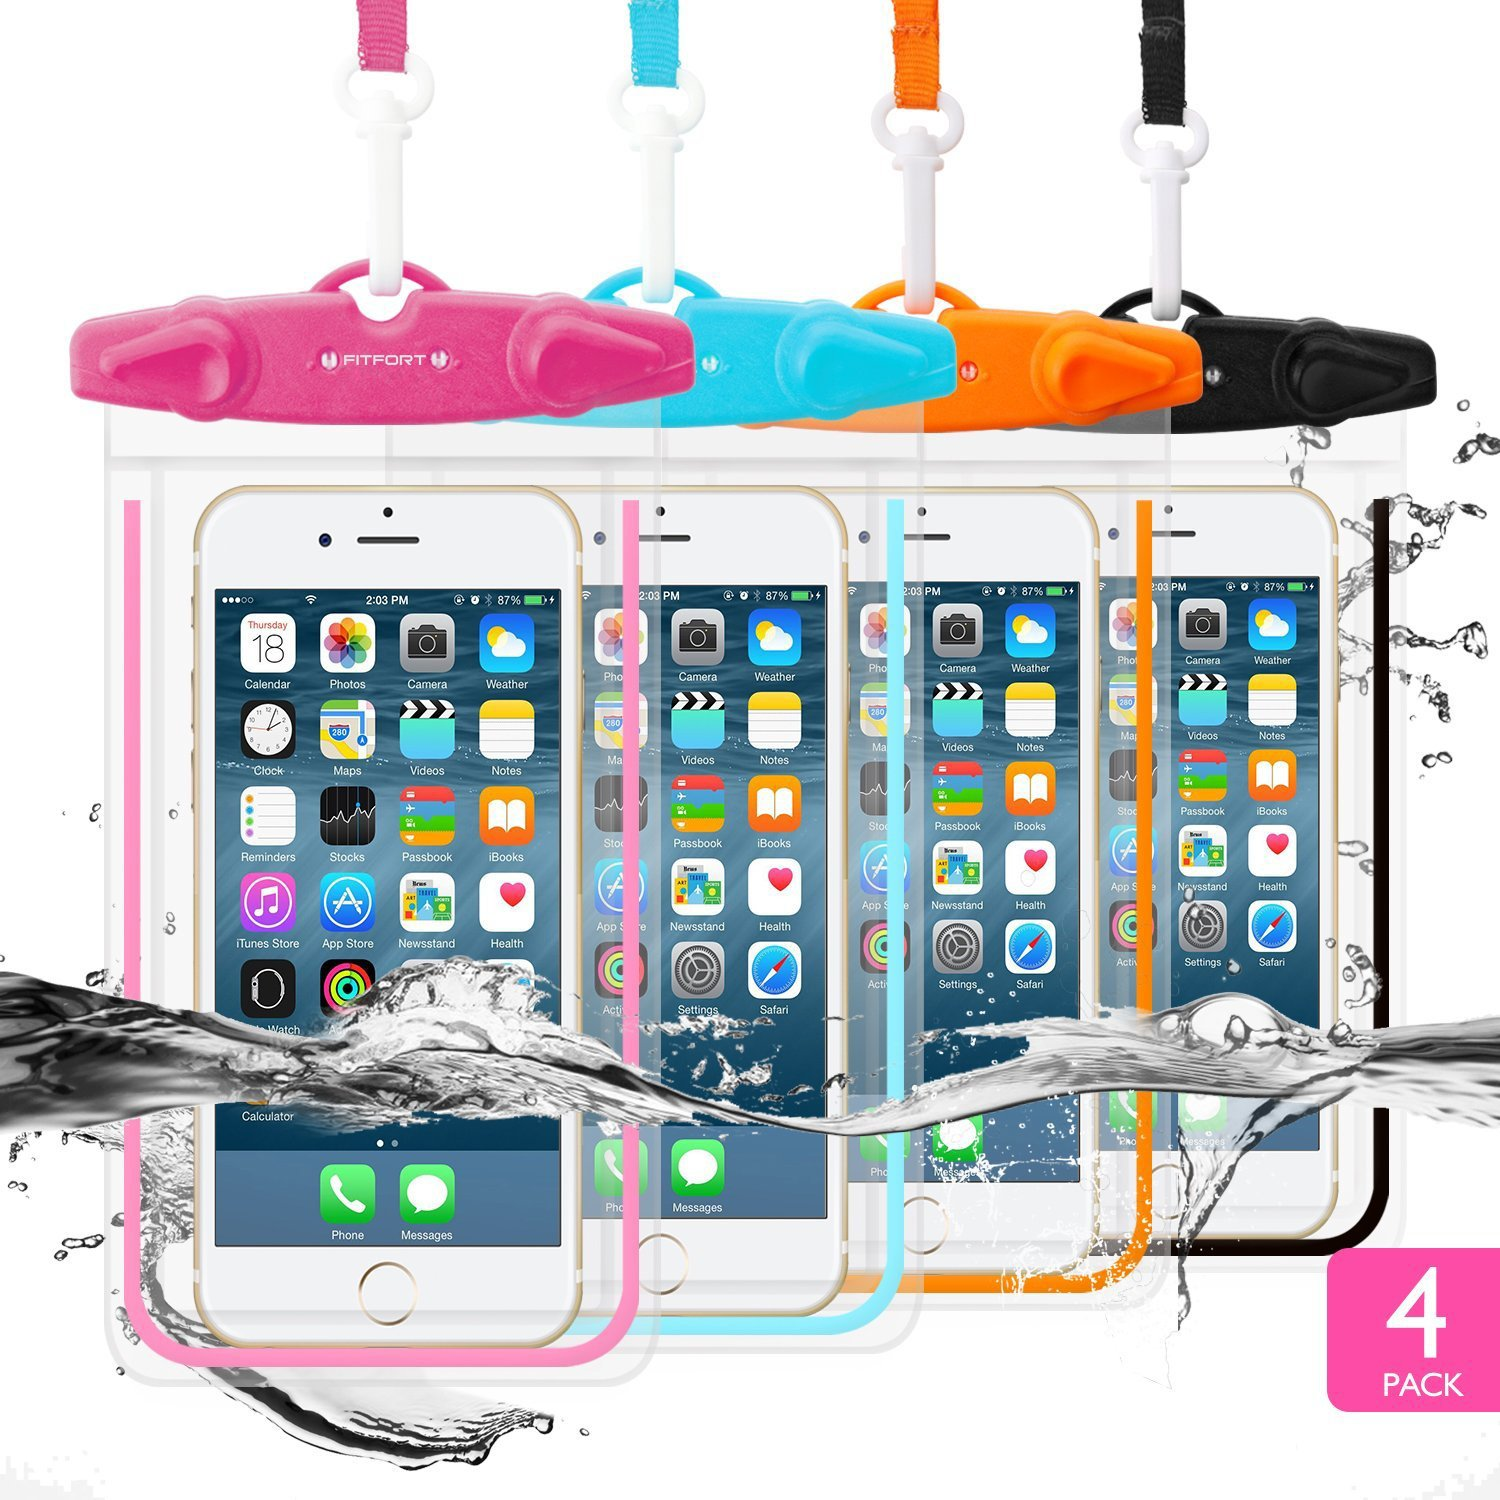 "4 Pack Universal Waterproof Case FITFORT Cell Phone Dry Bag/Pouch for iPhone X 8 7 6 6S Plus Galaxy S8/S7 Edge/S6 Note4 LG G5 Up to 5.5""(Black+Blue+Orange+Rose Red)"